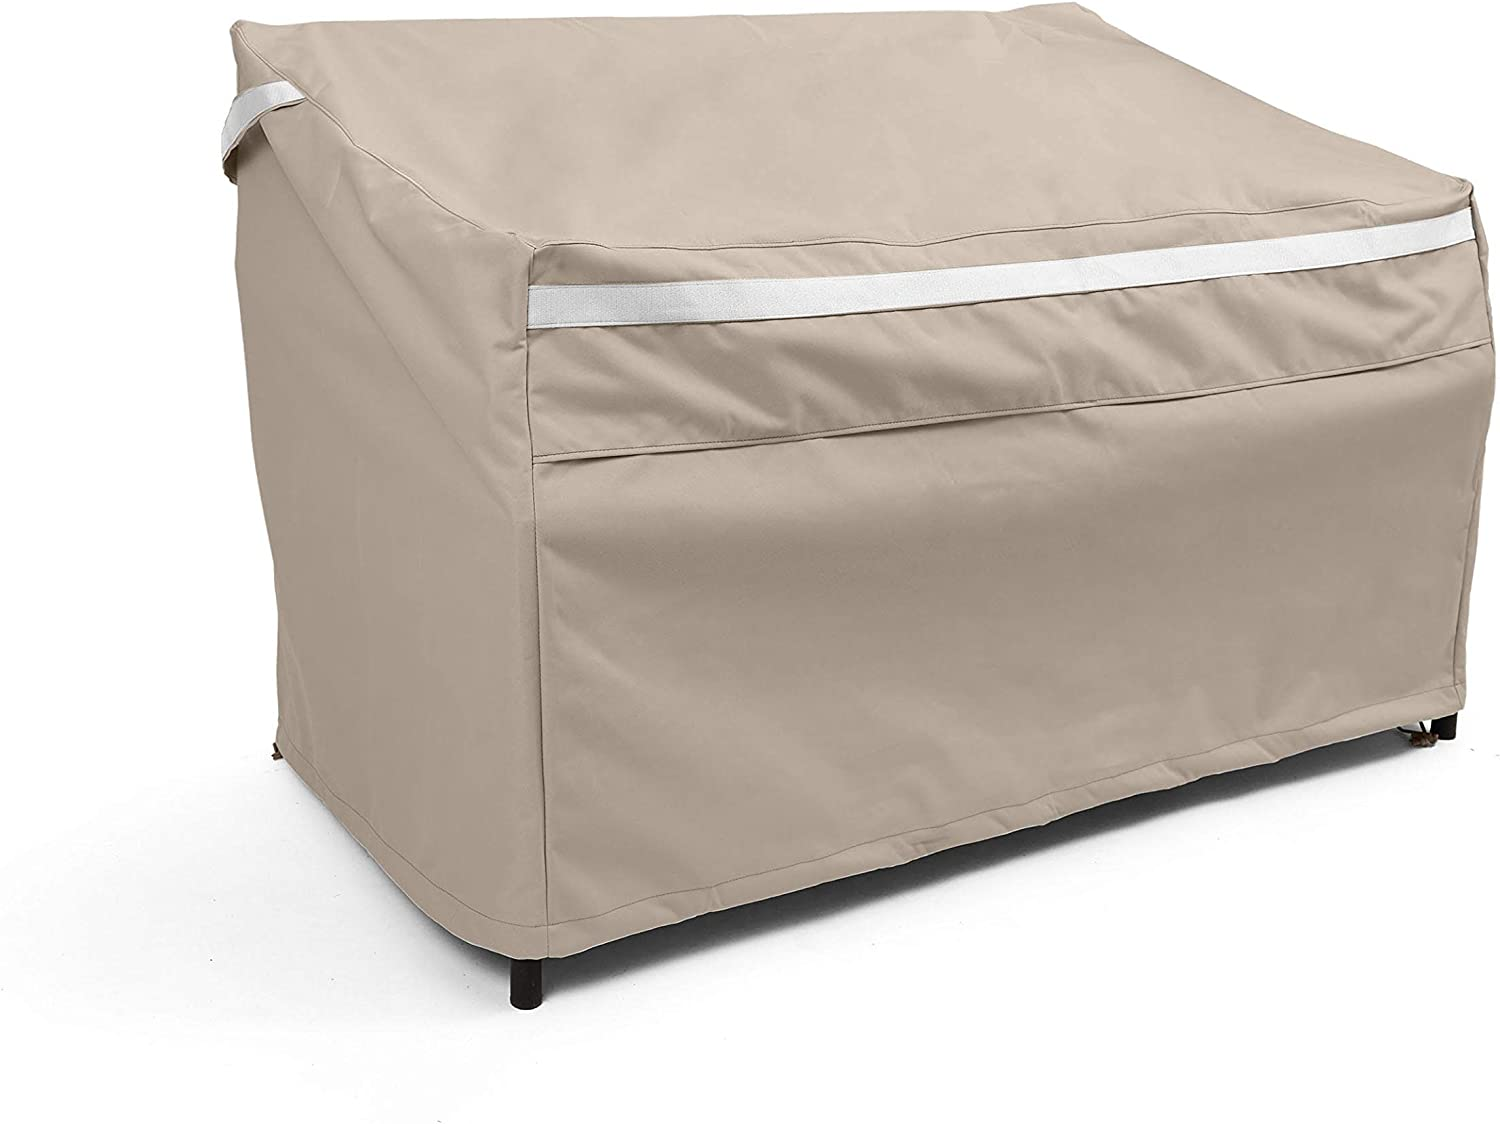 Covermates Outdoor Patio Sofa Cover Premium Direct store - Polyester favorite Weather